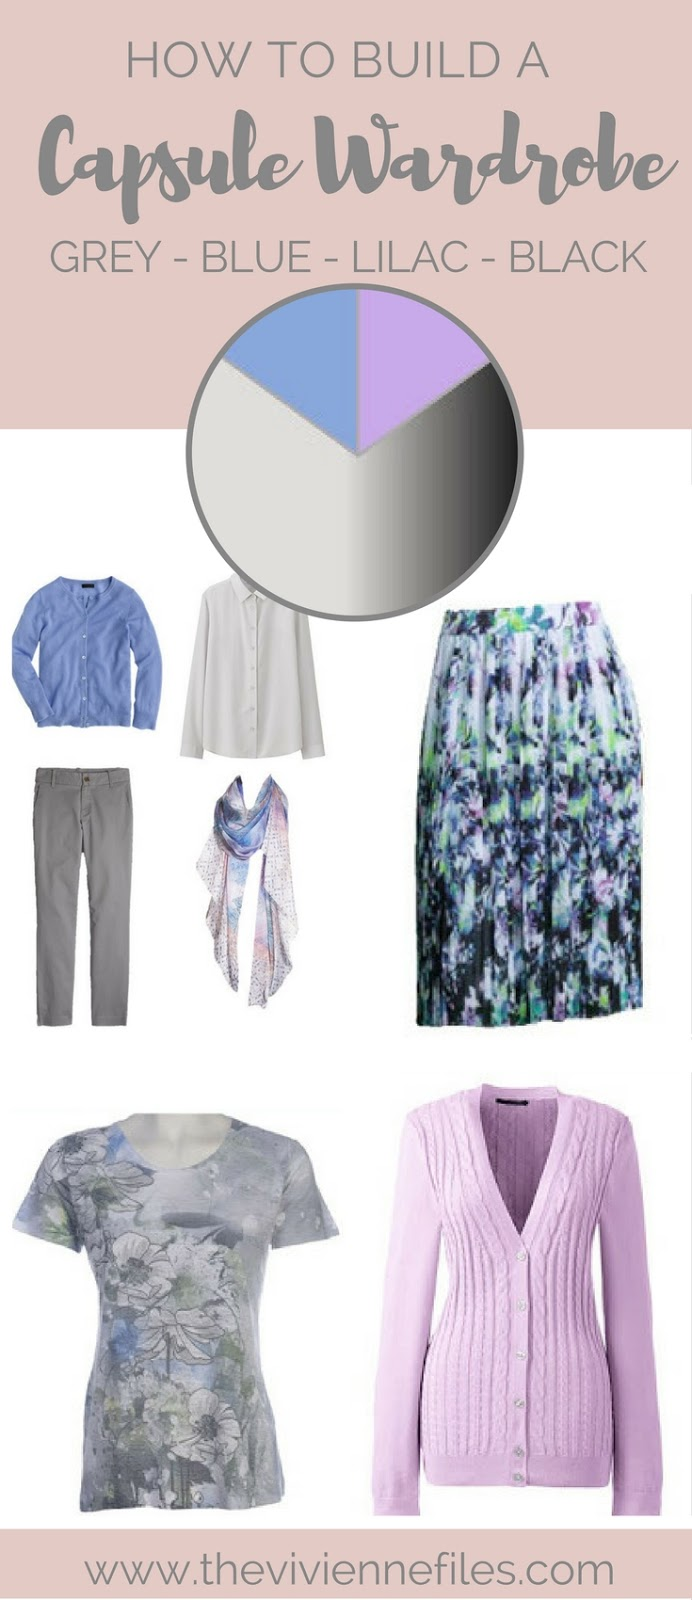 how to build a capsule wardrobe in grey blue lilac and. Black Bedroom Furniture Sets. Home Design Ideas